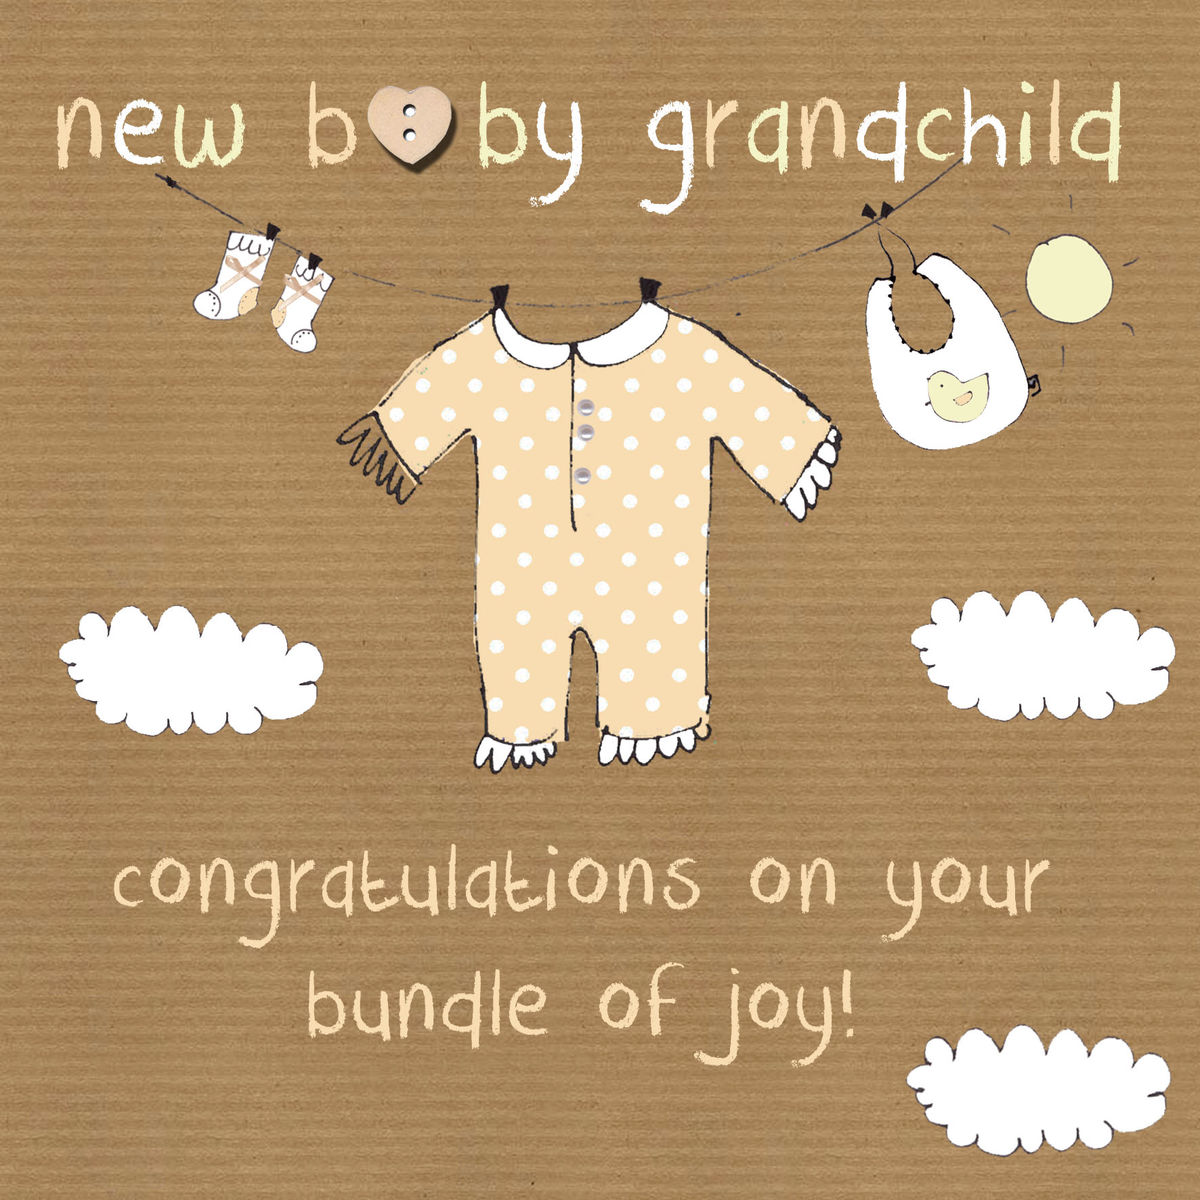 Charming Buy New Baby Child Card Online Parent Massive Congratulations On Your New Baby Congratulations On Your New Baby Hebrew New Parents Congratulations On Your New Child Son Daughter Card baby shower Congratulations On Your New Baby